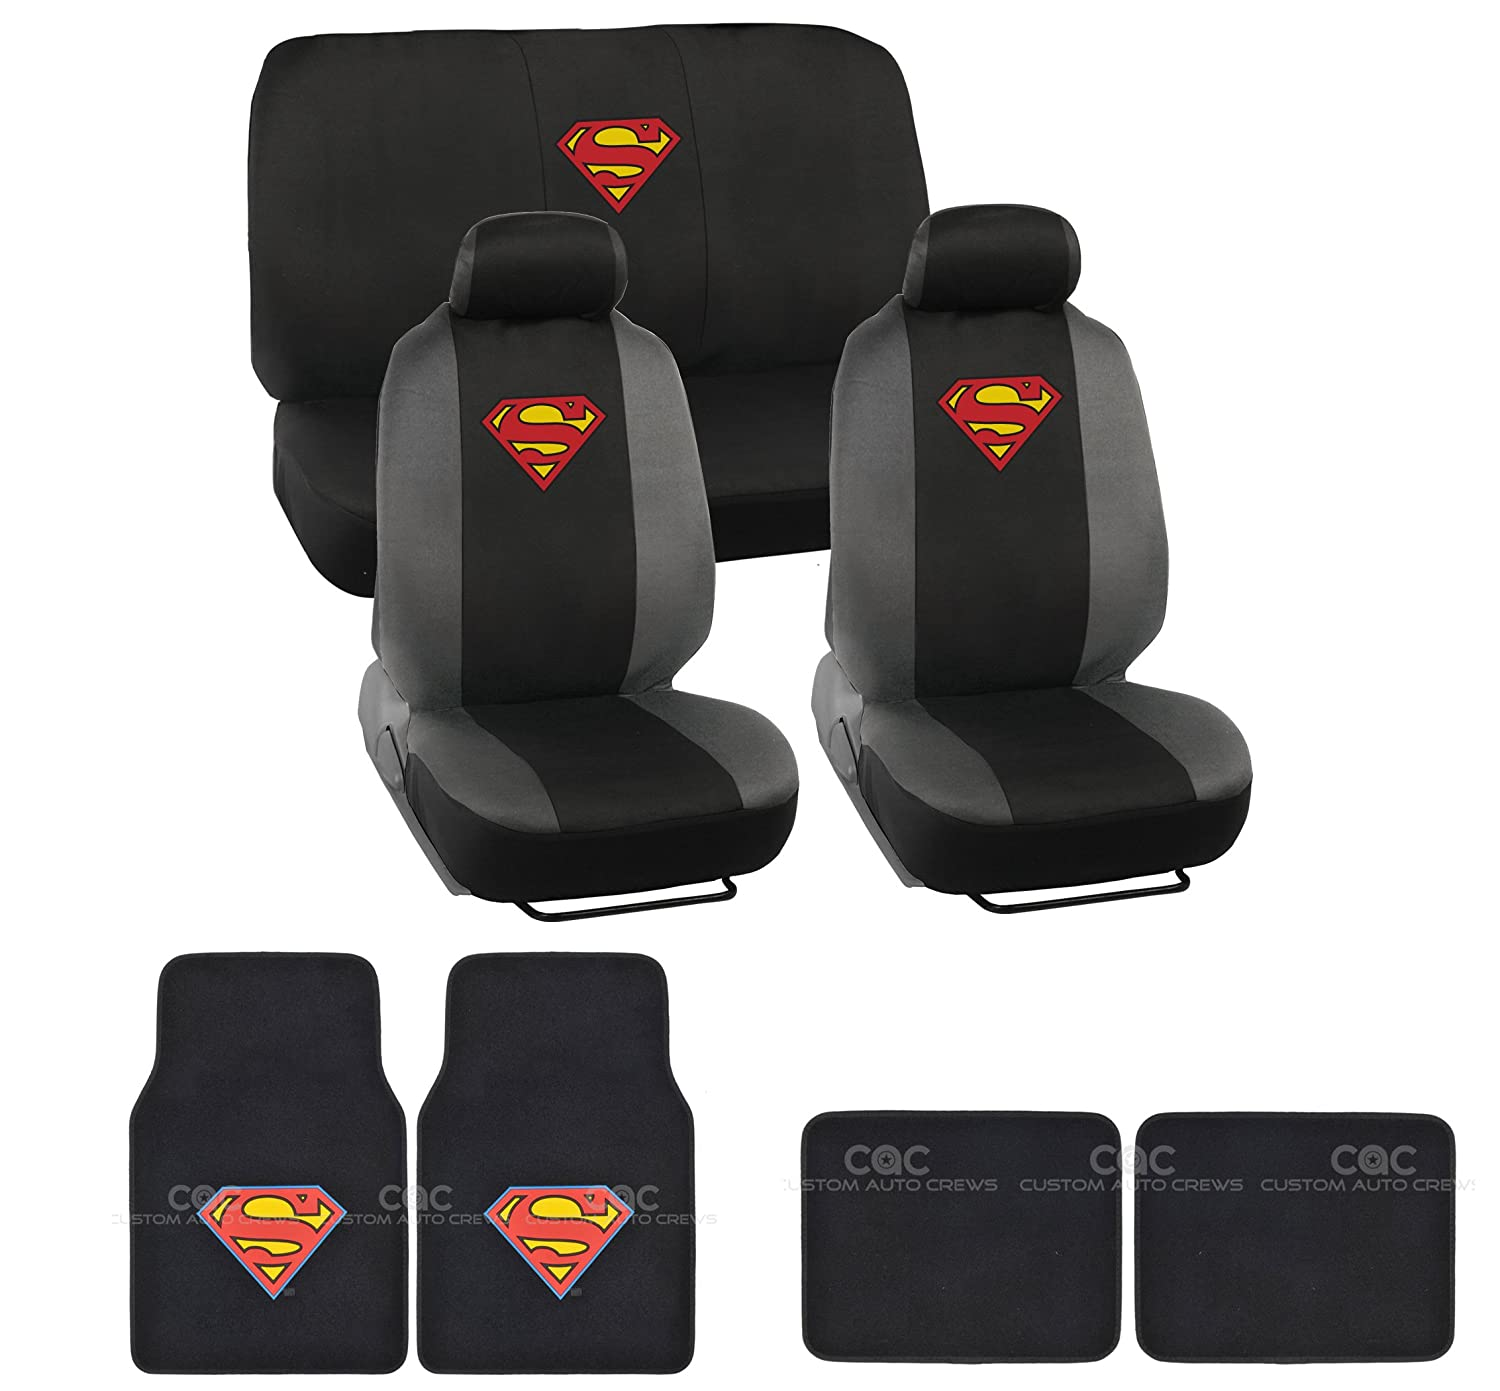 100 Custom Leather Car Seat Covers Melbourne